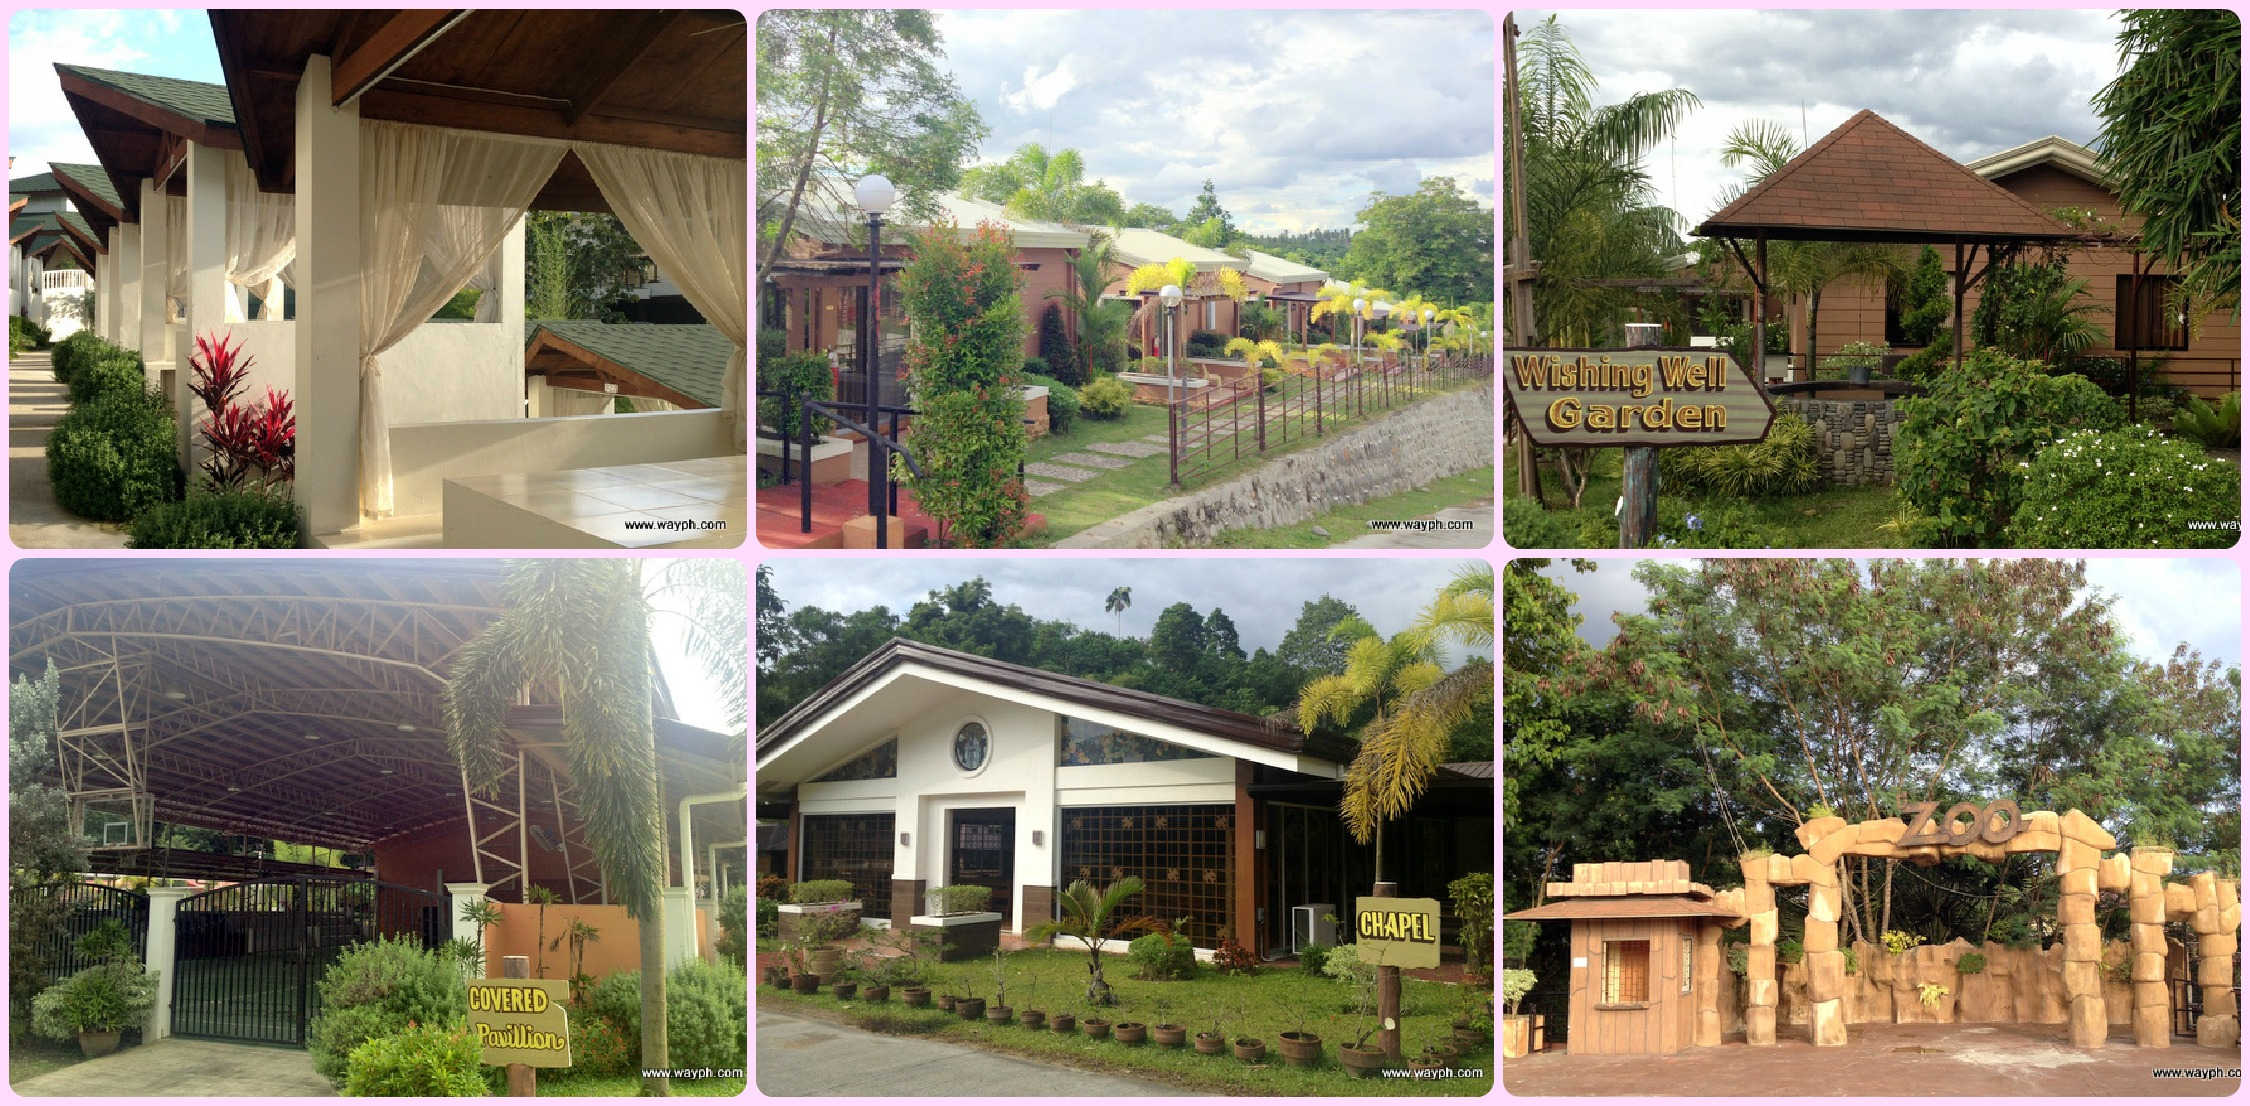 Open Cottages Rooms Wishing Well Covered Court Chapel And Zoo